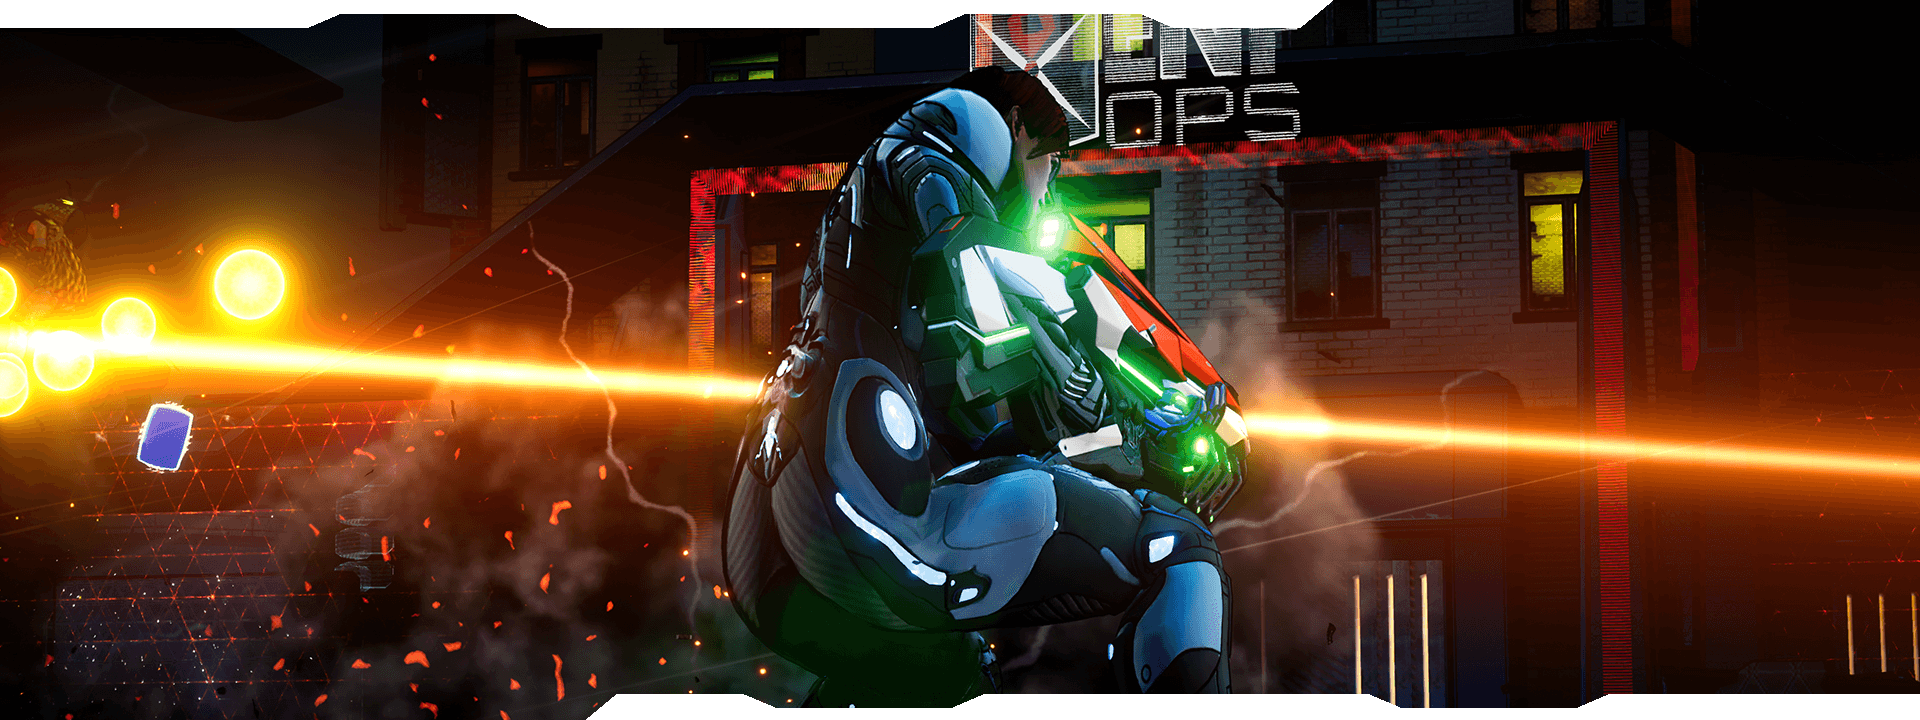 Crackdown 3 Dangerous open wrold playground